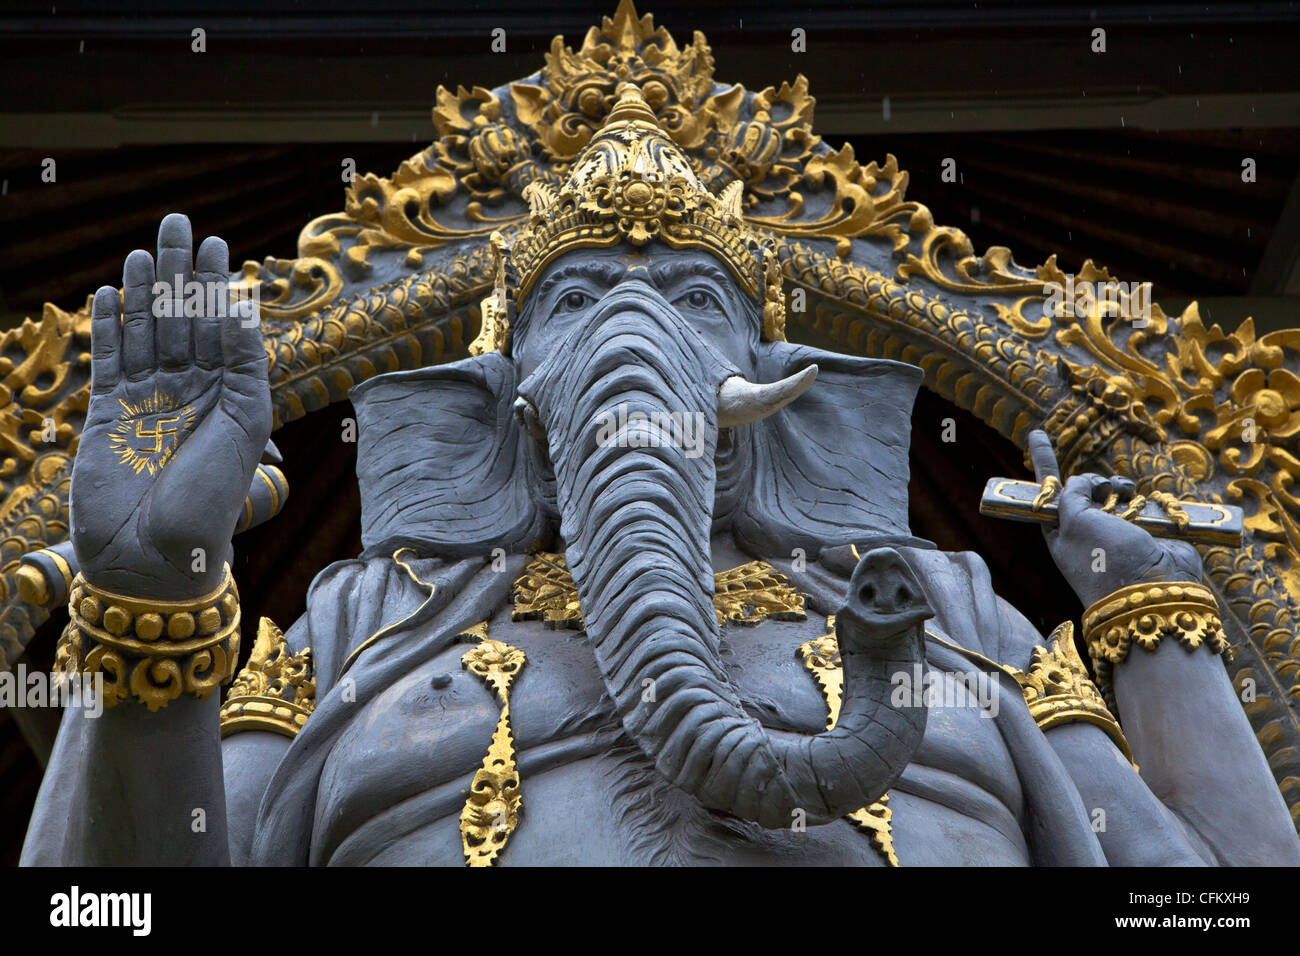 Balinese carved stone statue of ganesh in hindu temple